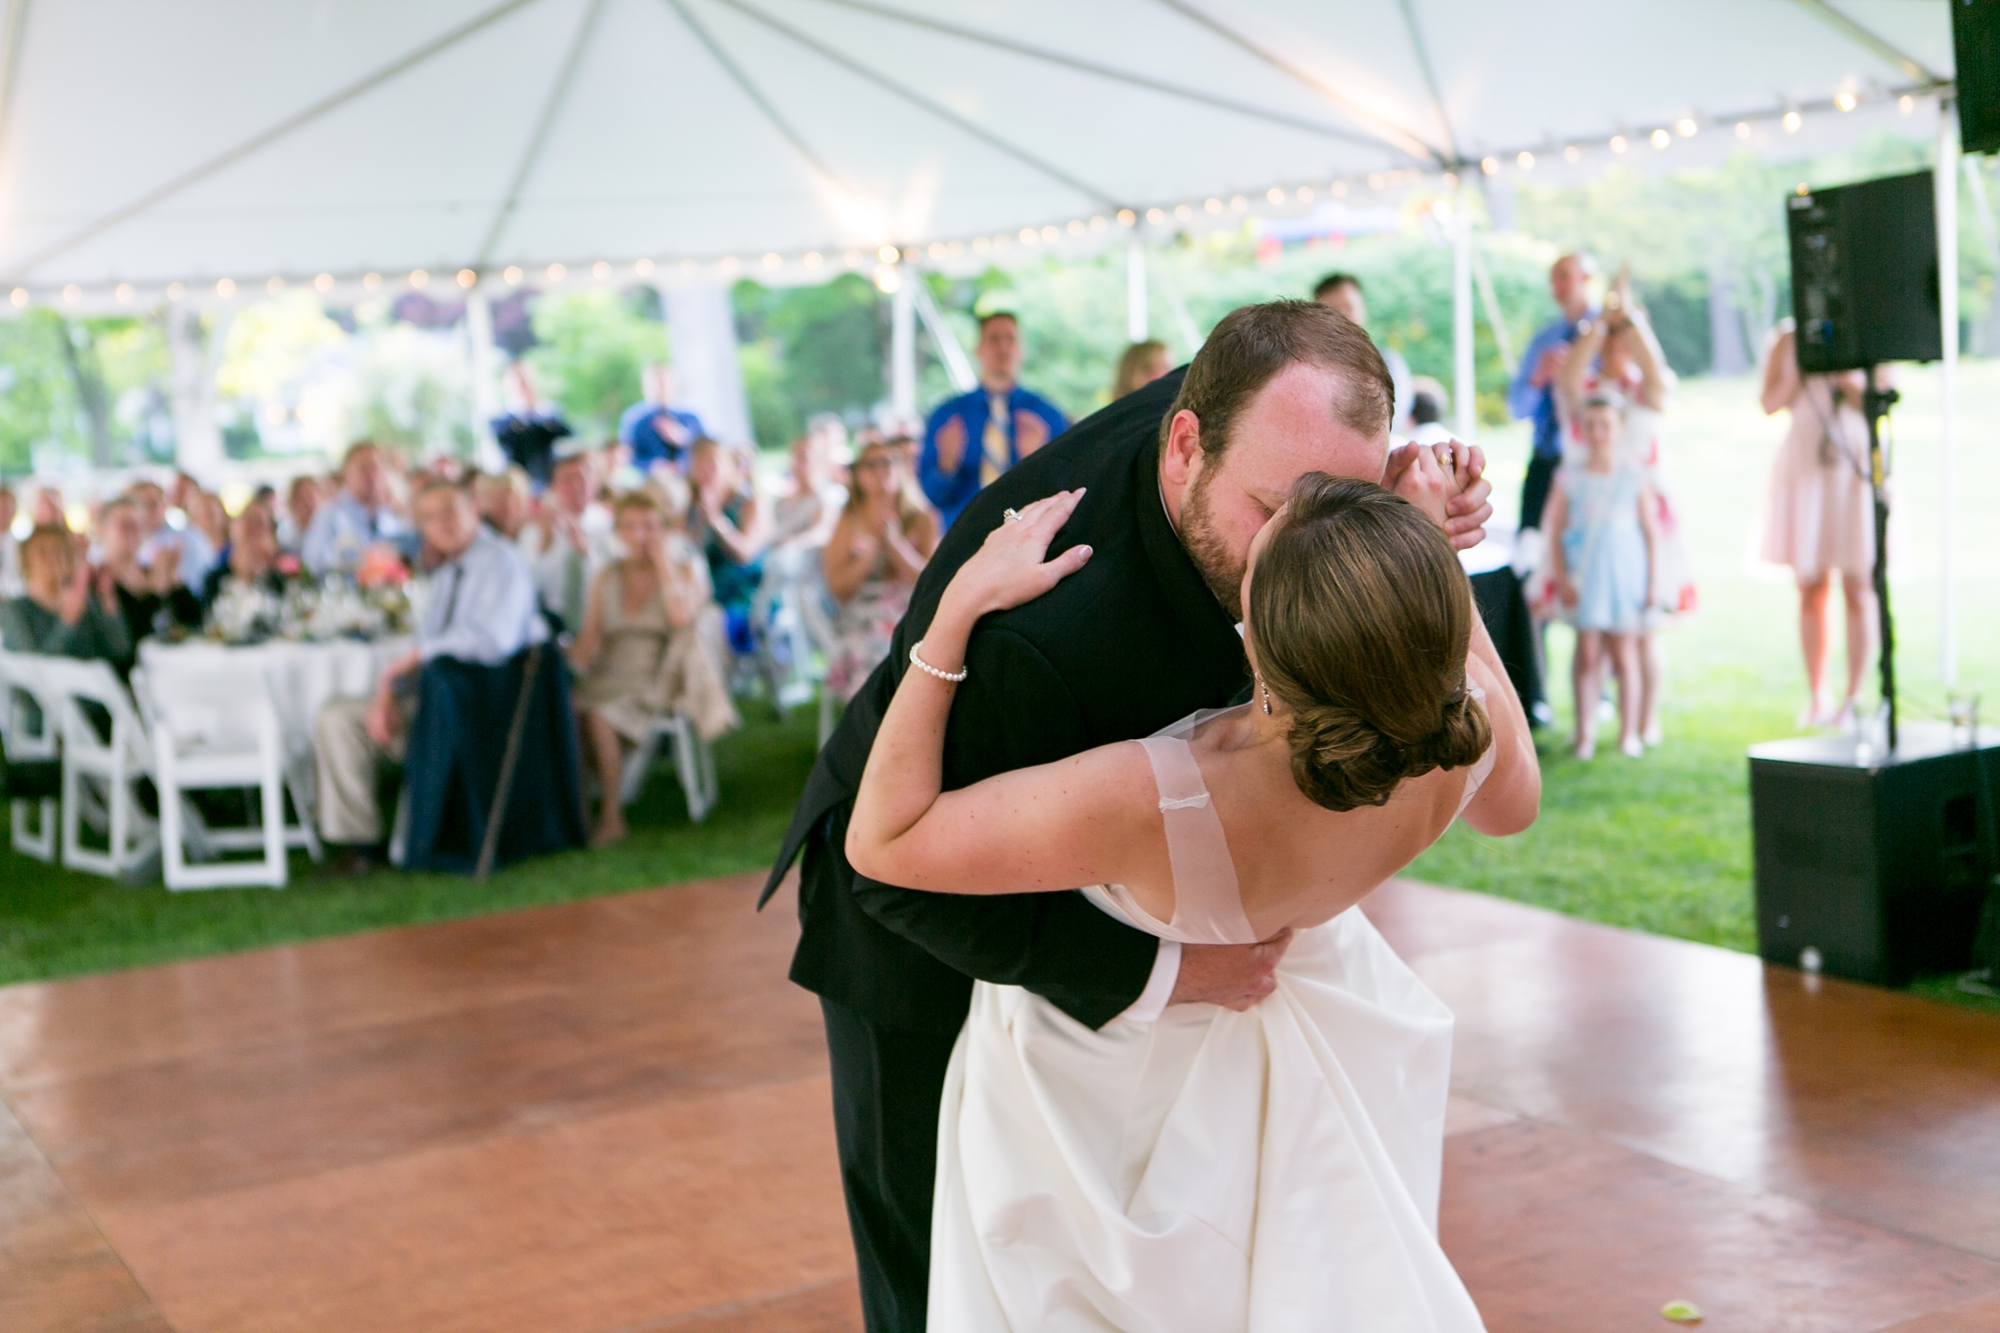 542Allegra_Anderson_CT_Wedding_Photographer_Stamford_Sterling_Farms_Golf_Club_2016